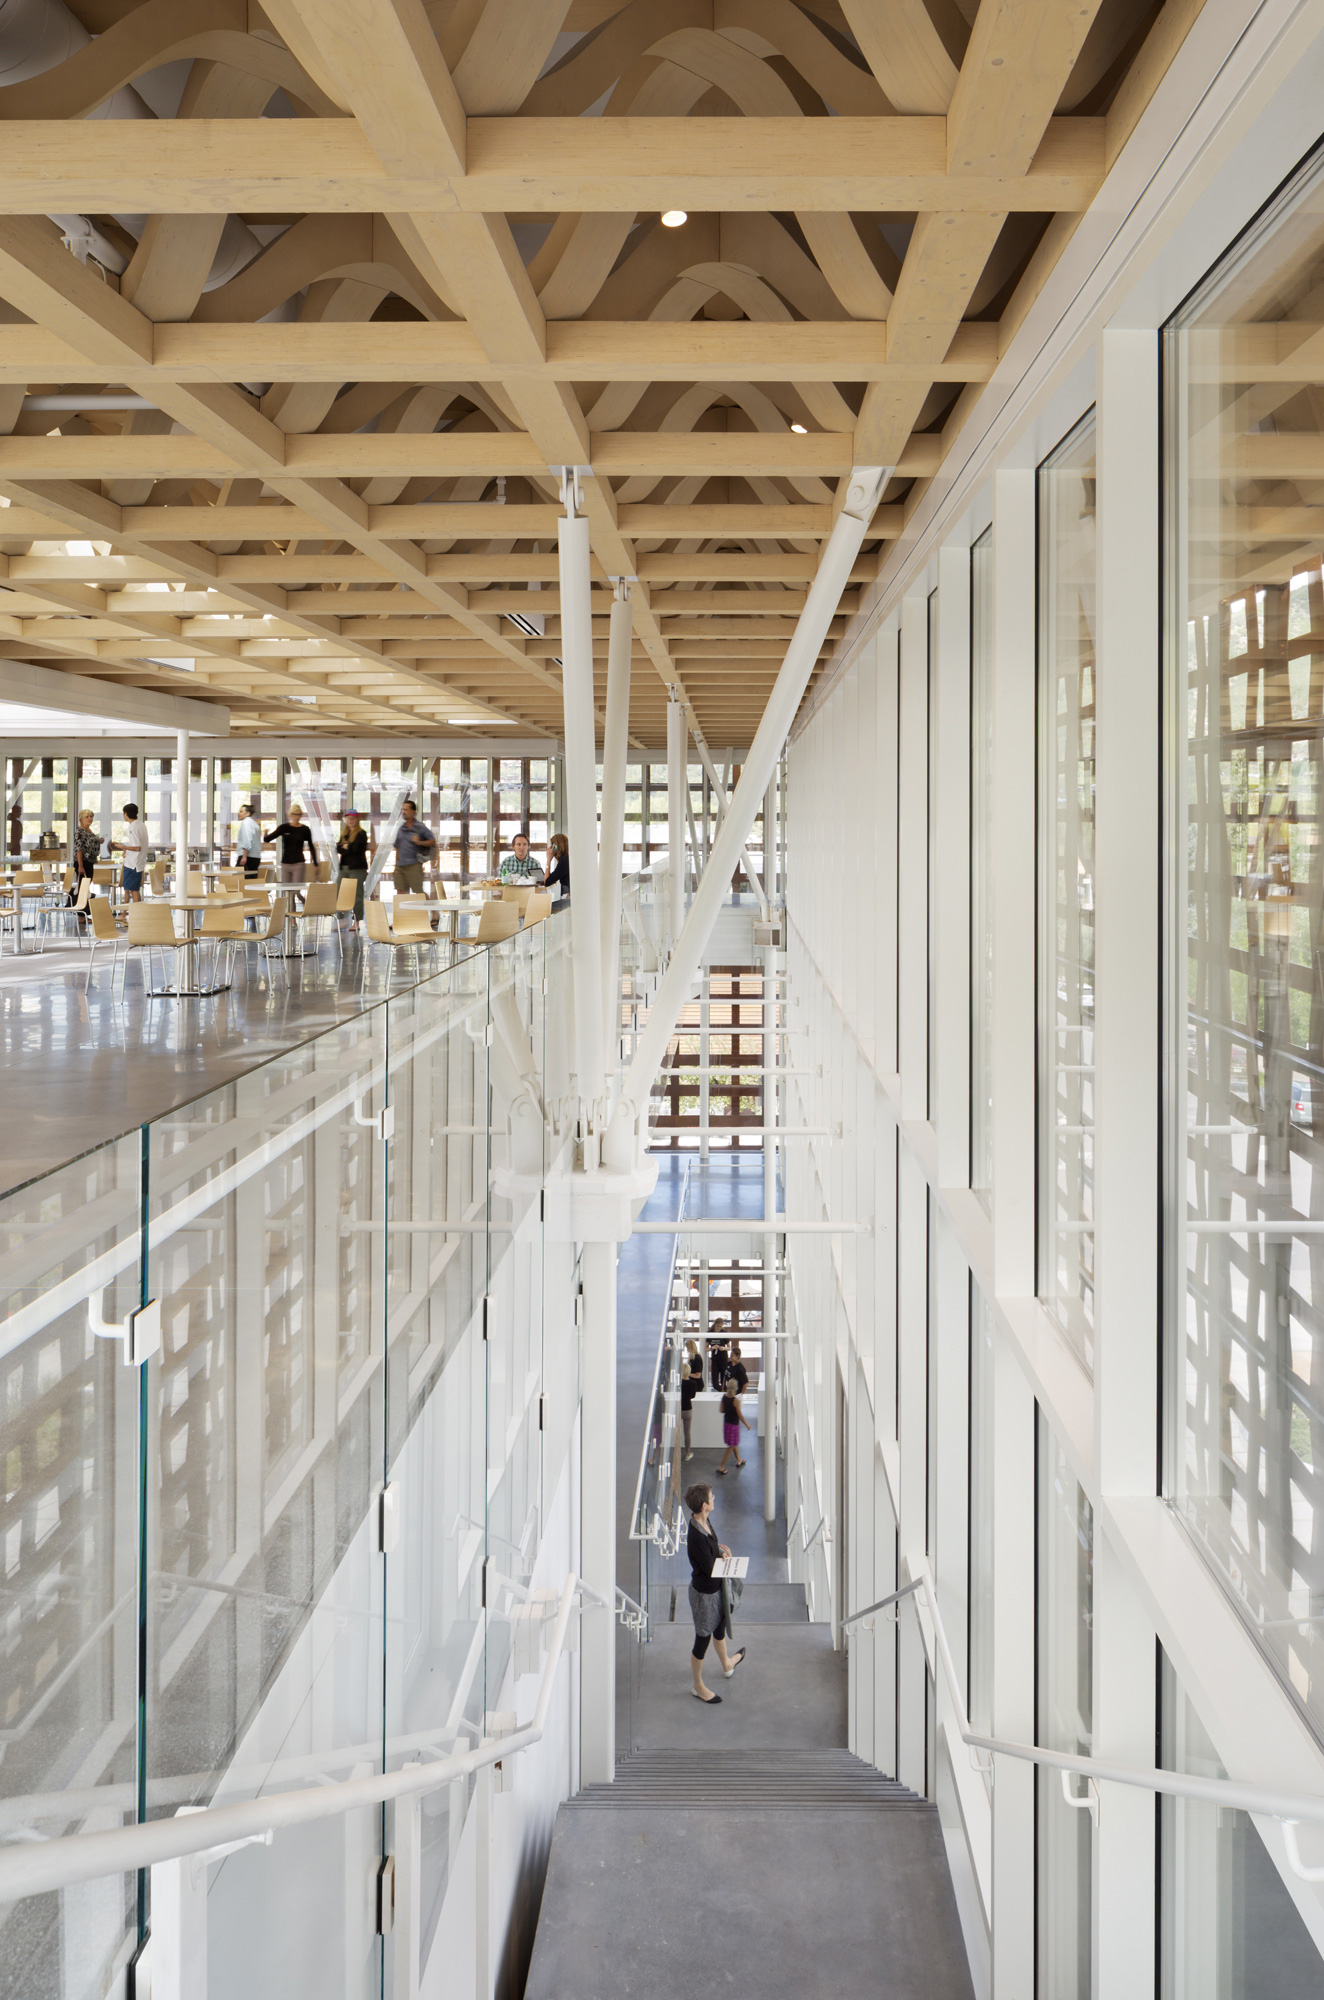 Aspen Art Museum / Shigeru Ban Architects (15)